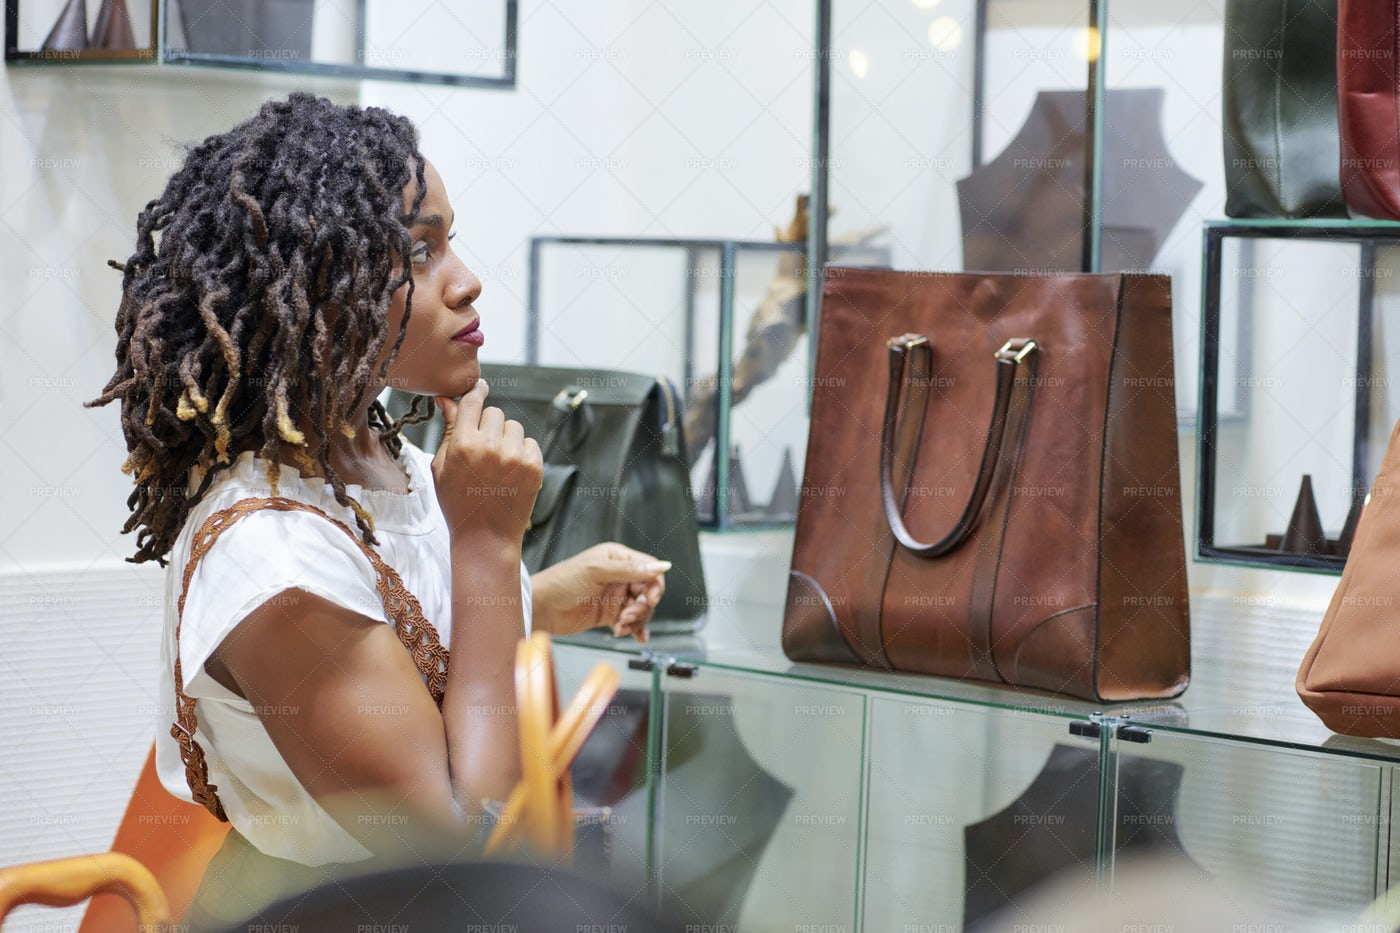 Doubting Woman Looking At Leather Bag: Stock Photos